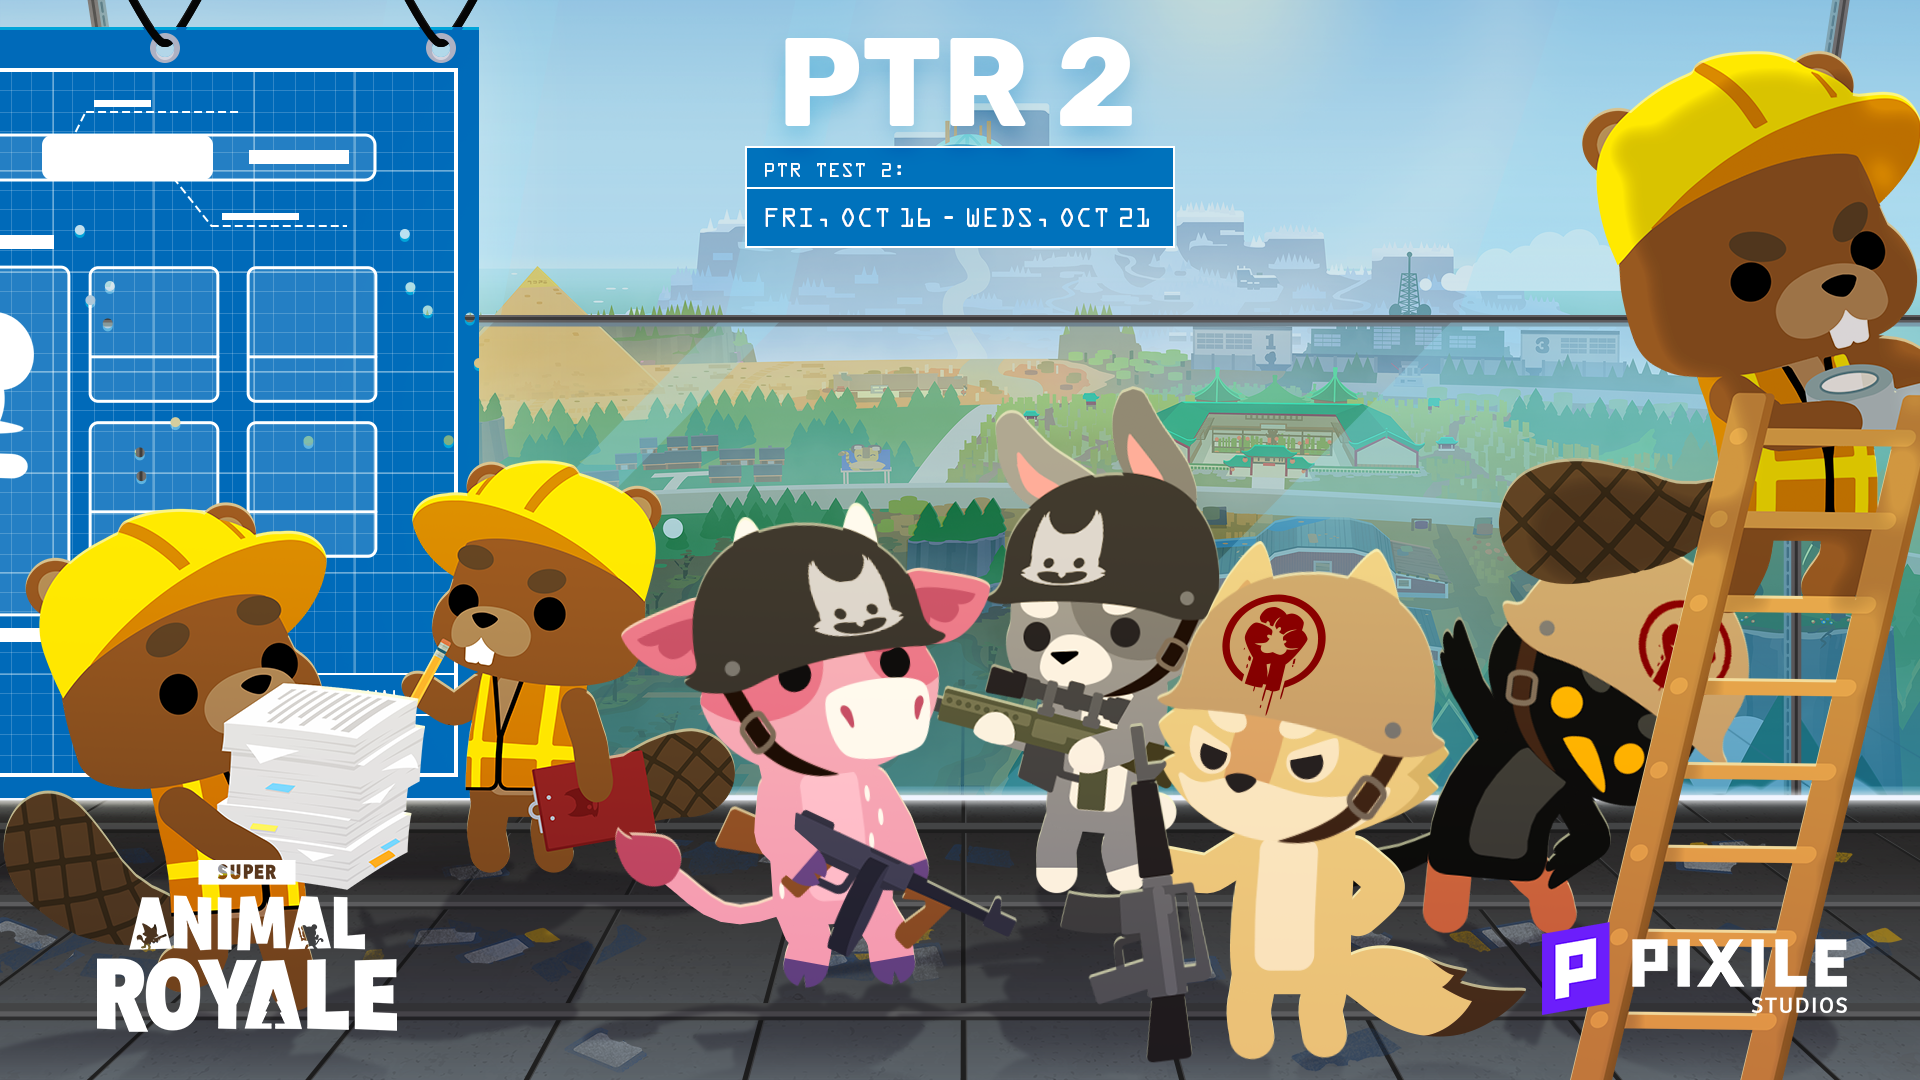 PTR Phase 2 is live!